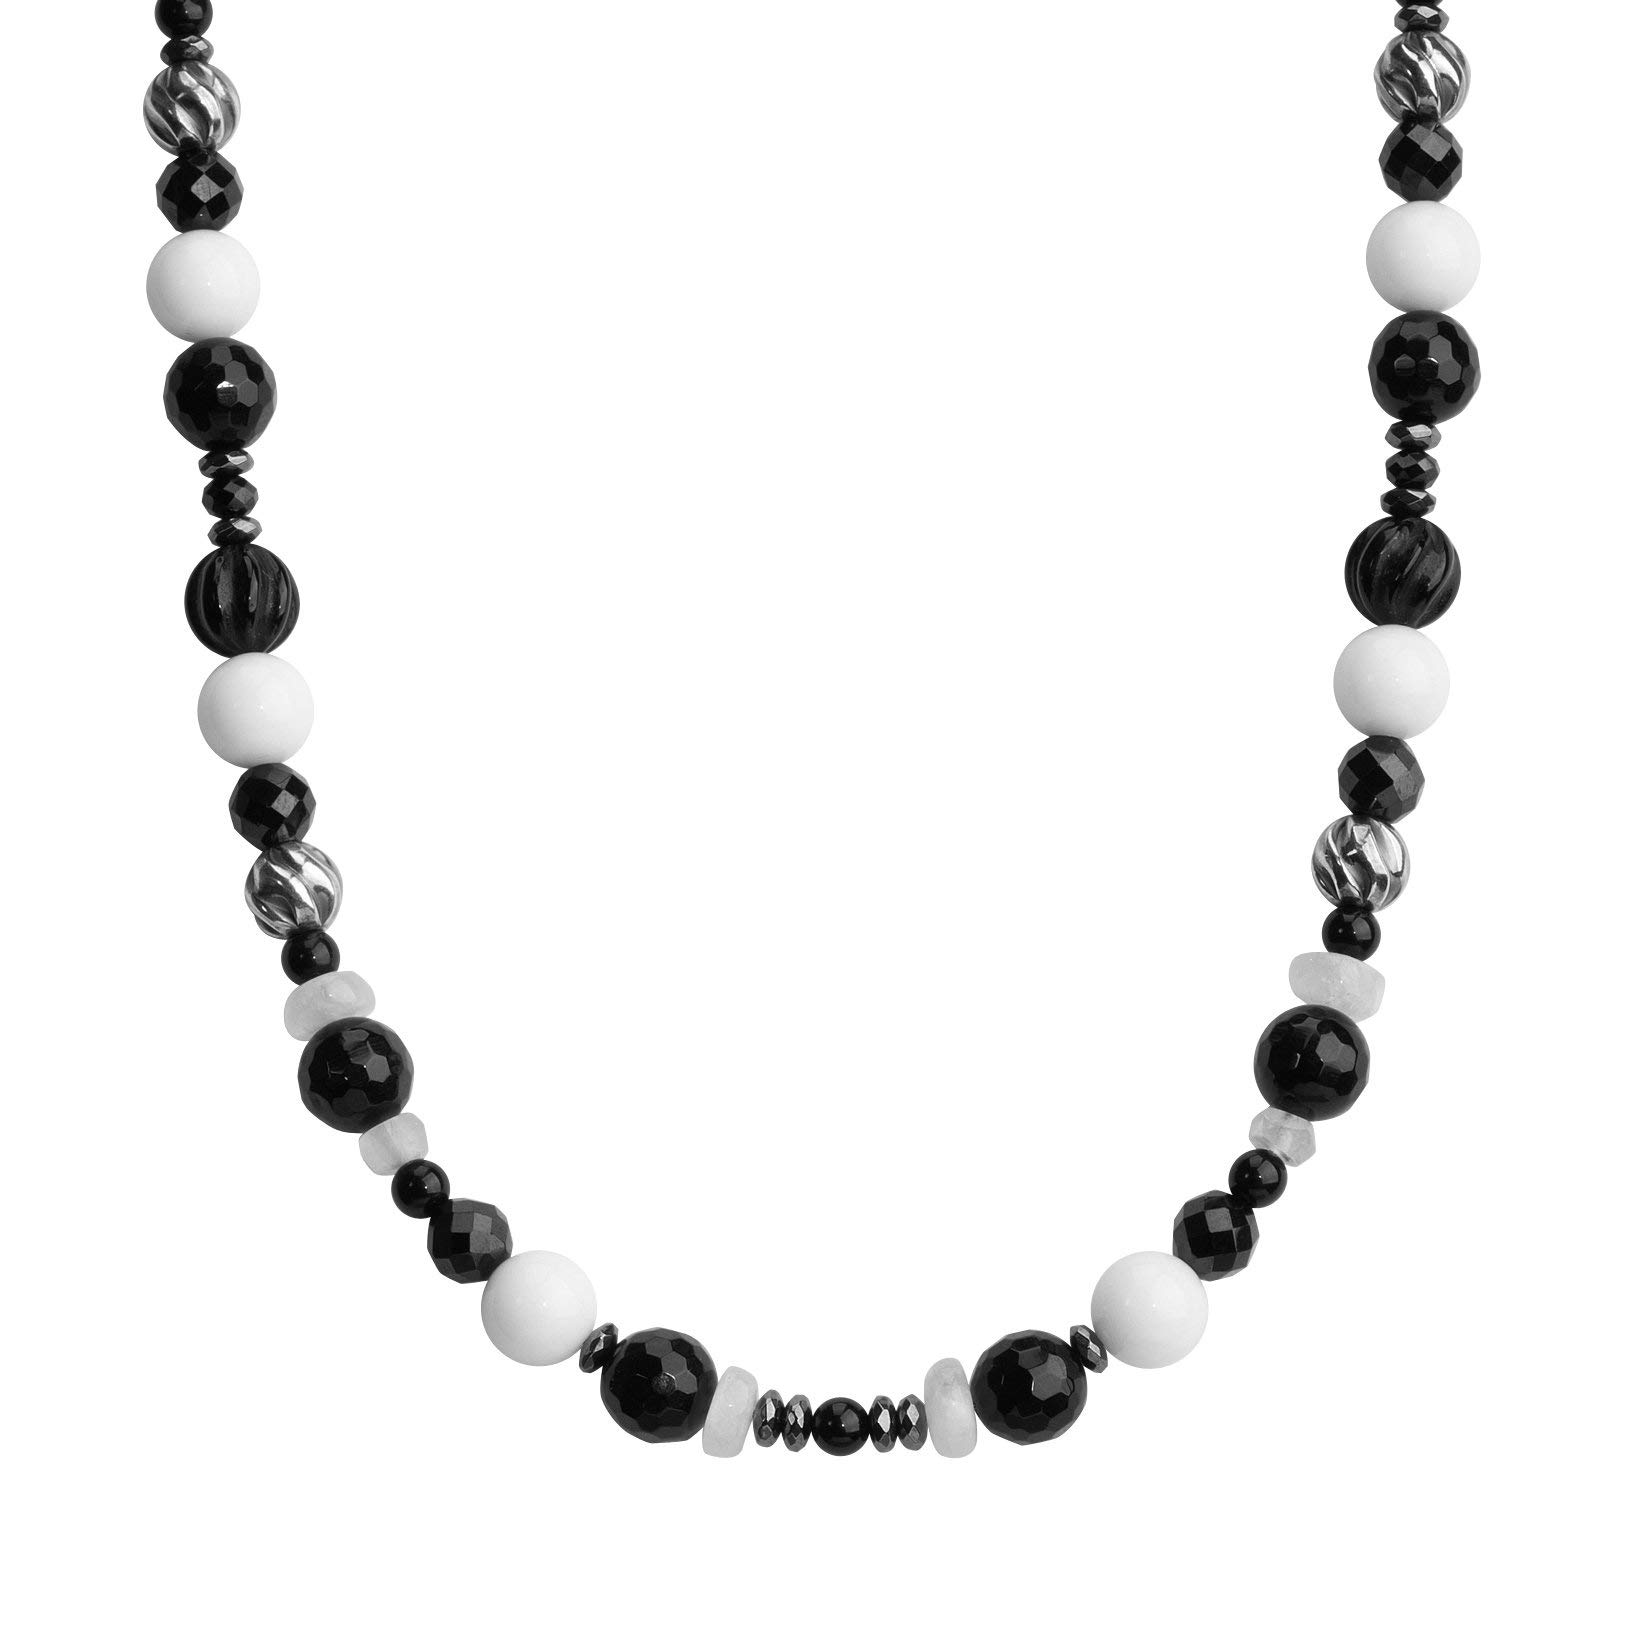 American West Jewelry Sterling Silver Black Agate, Onyx, Spinel, Hematite and Moonstone Gemstone Beaded Necklace 16 to 19 Inch